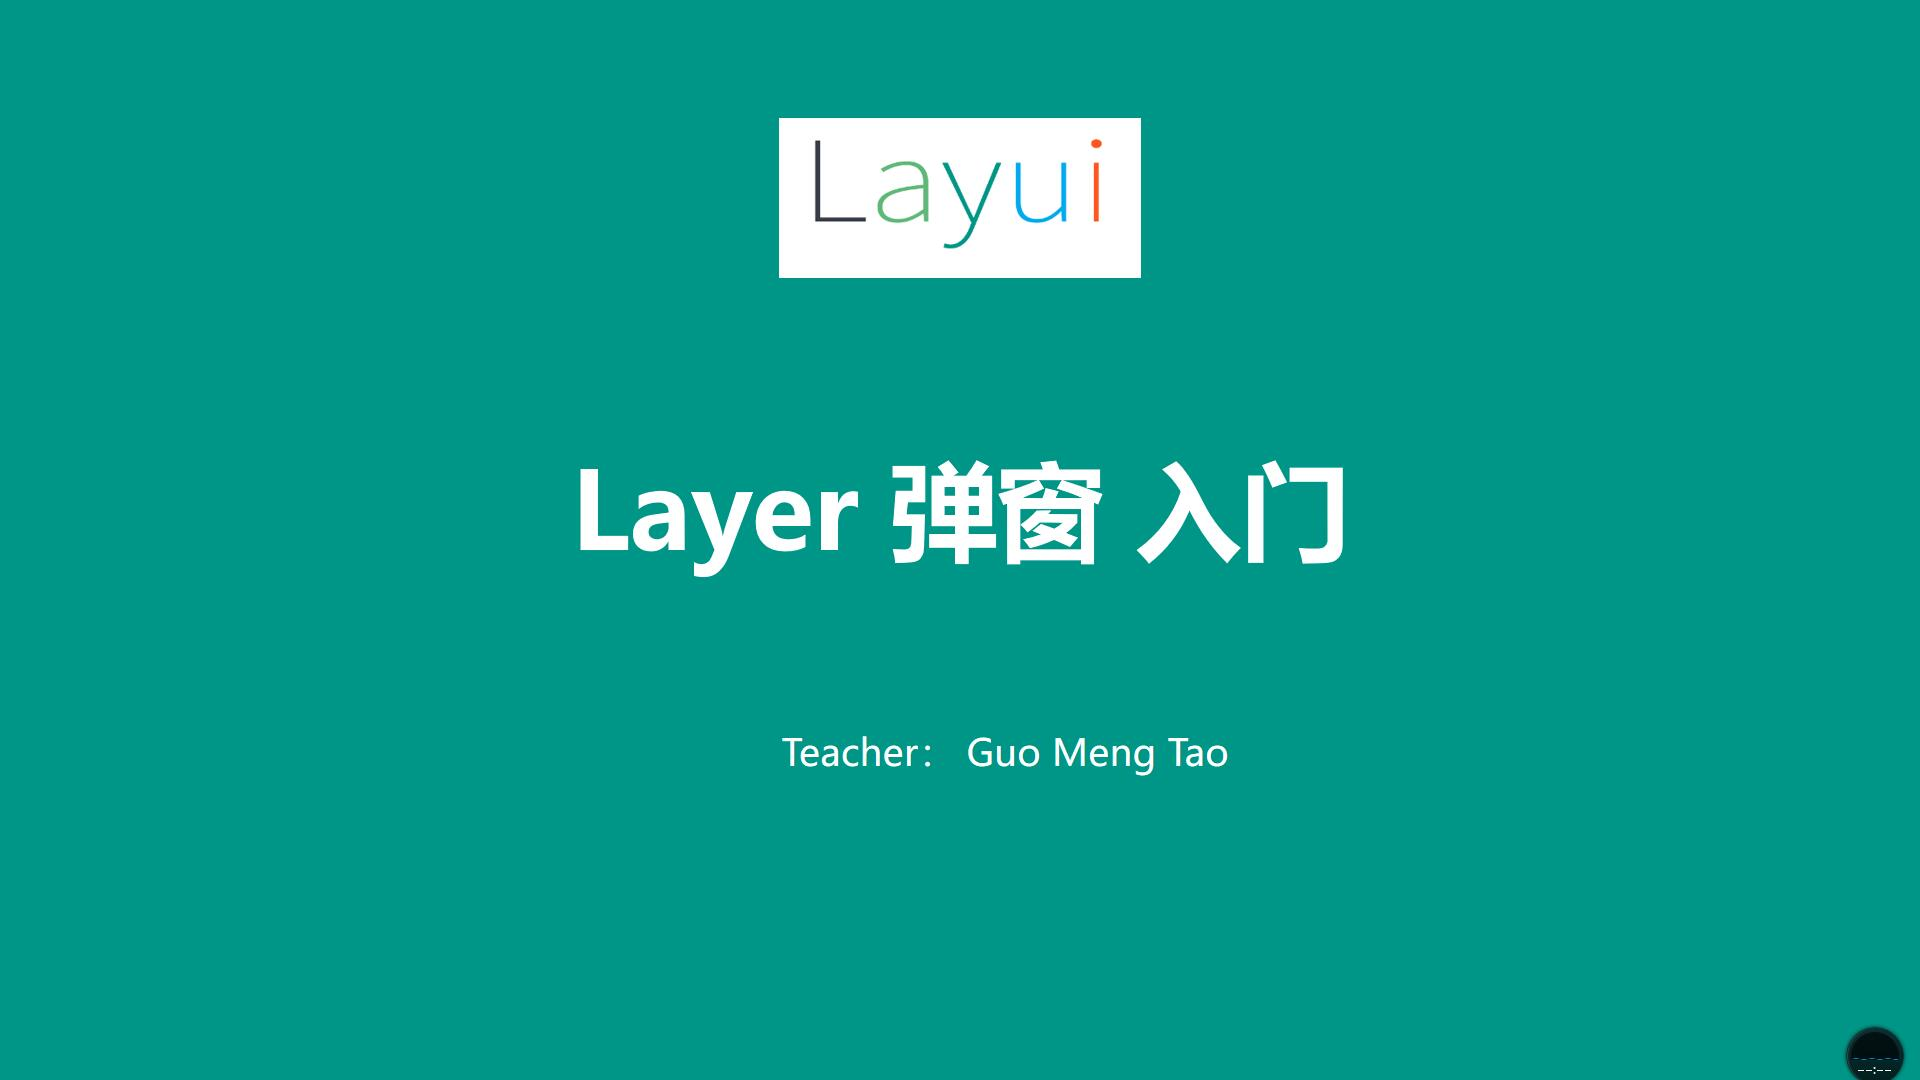 Layer 弹窗入门